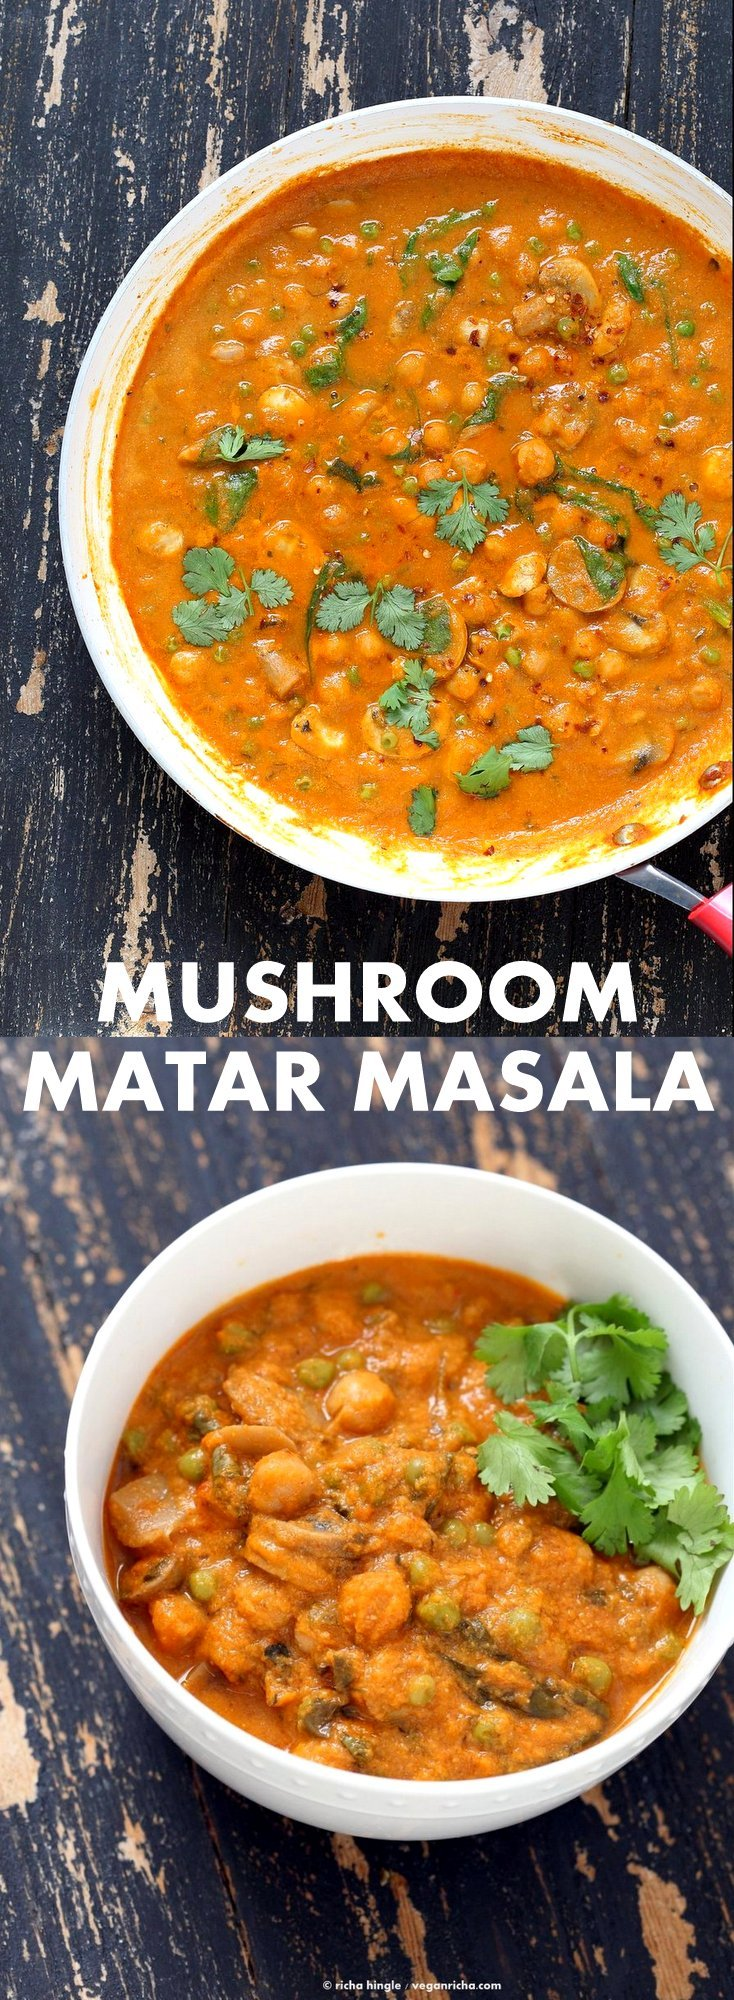 Mushroom Matar Masala. Mushrooms and Peas in creamy tomato sauce. Mushroom Masala Recipe with Easy Masala Sauce , spinach and chickpeas. Vegan Indian Gluten-free Soy-free | VeganRicha.com